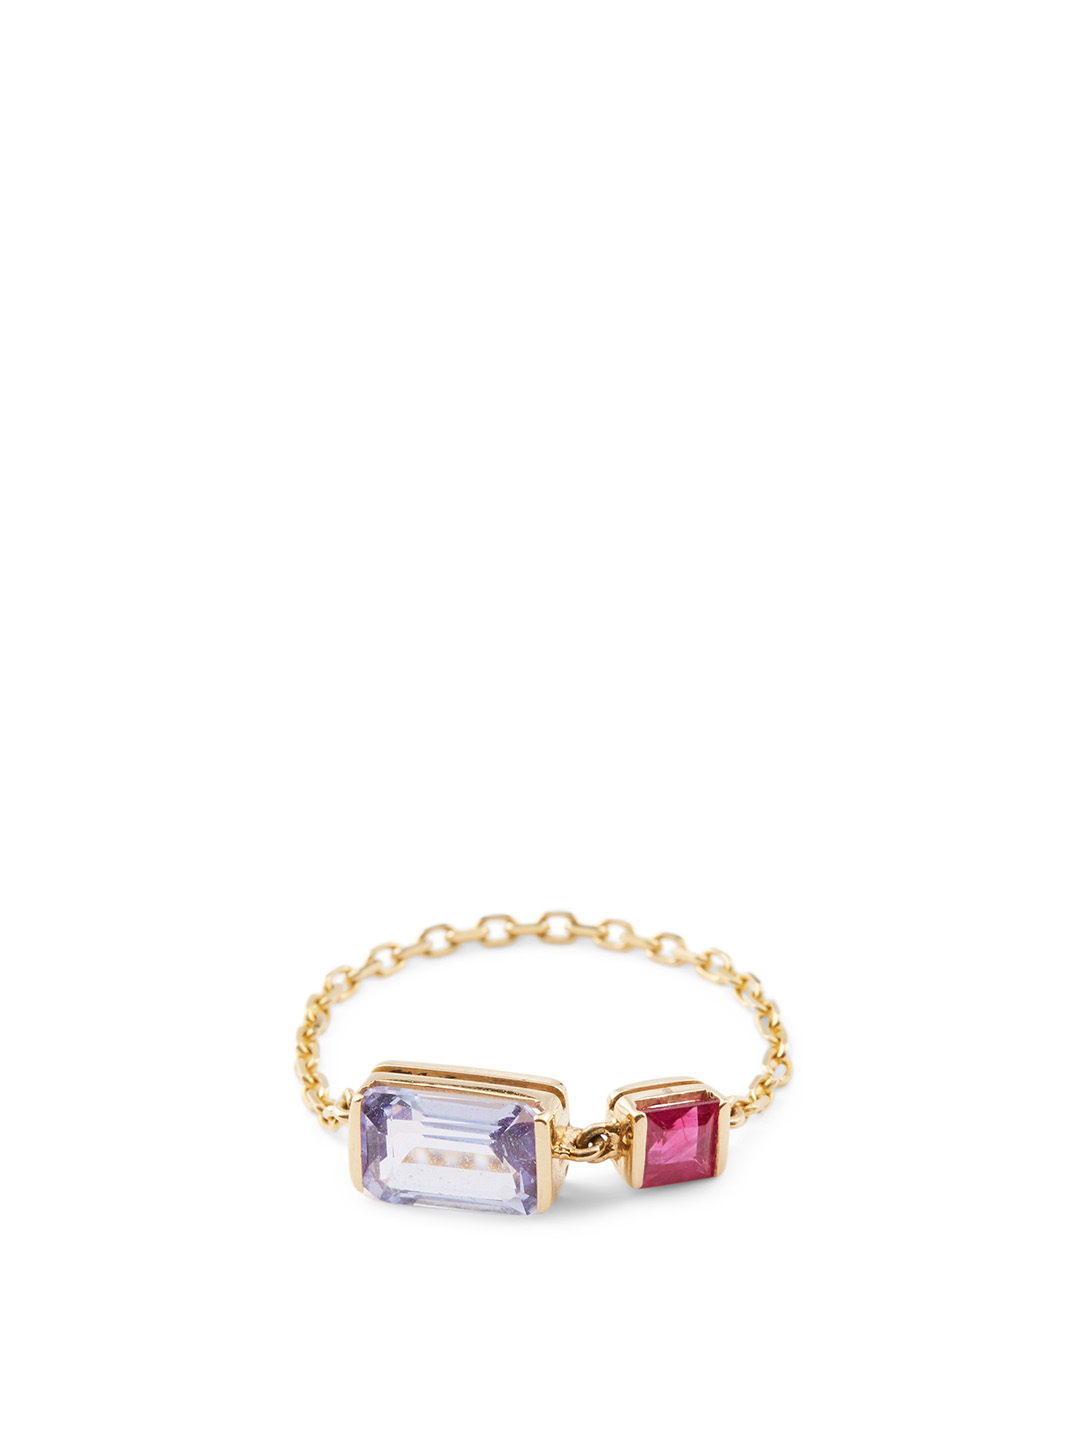 YI COLLECTION 18K Gold Chain Ring With Tanzanite And Ruby Women's Metallic